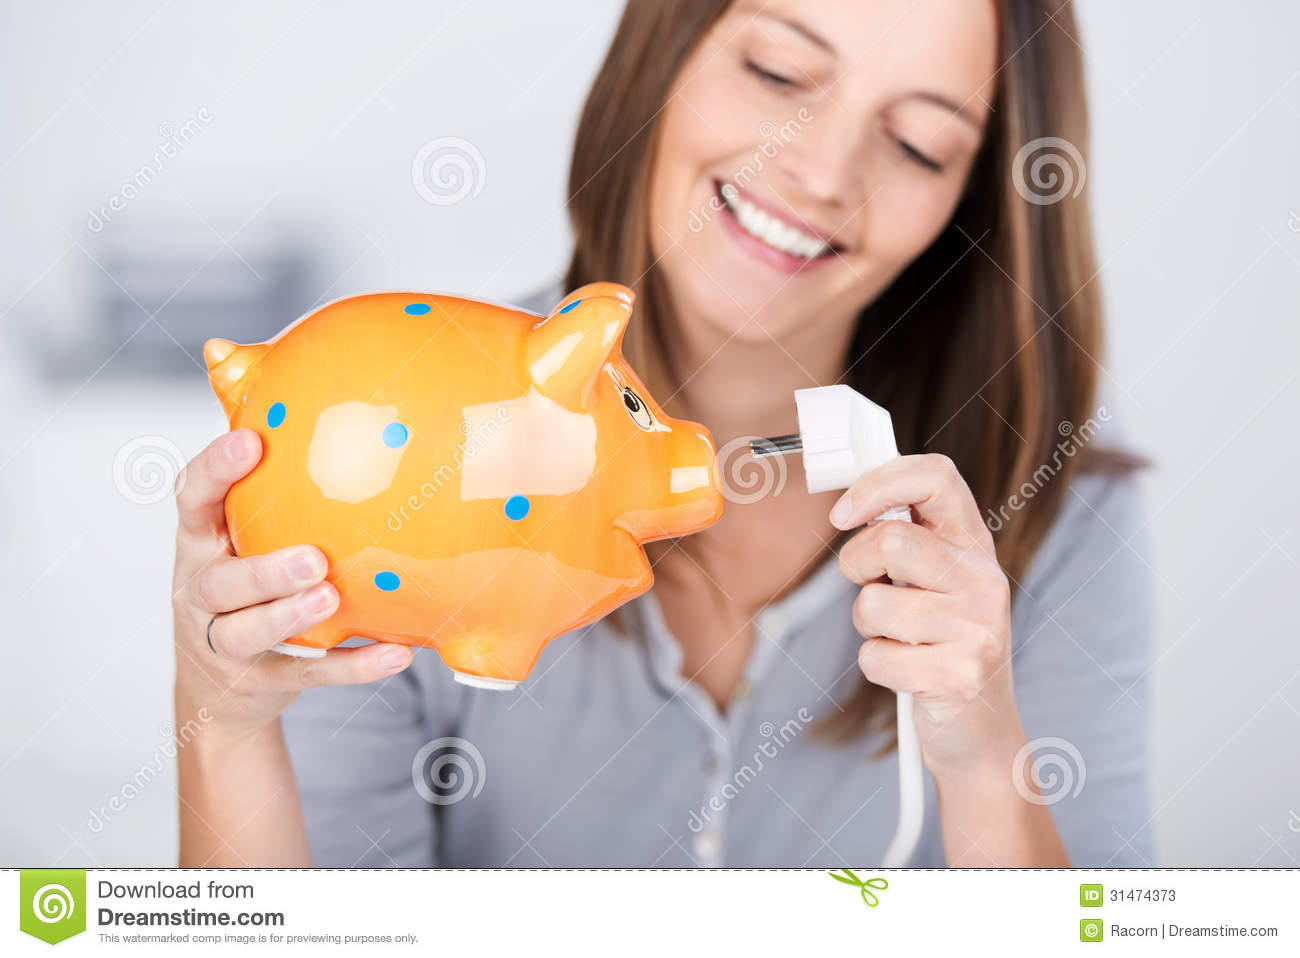 Piggy Bank Adult Funny Woman Holding Electric Plug And Piggy Bank Stock